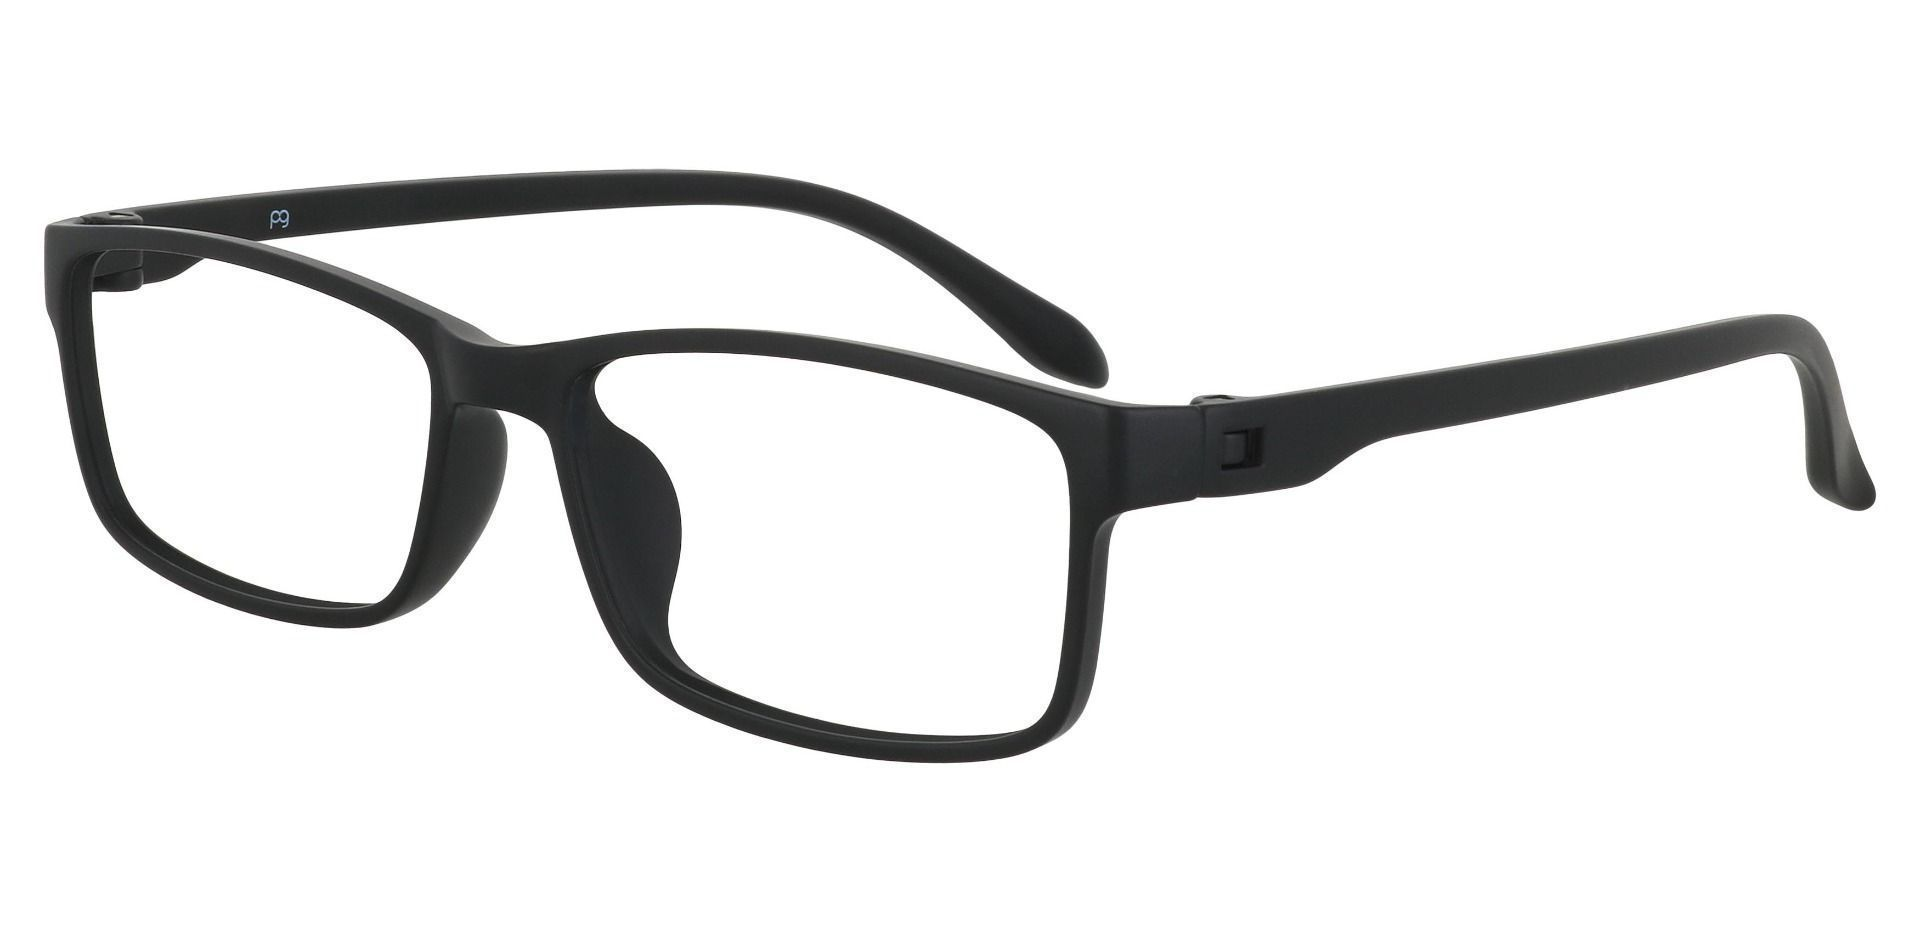 Candice Rectangle Prescription Glasses - Black